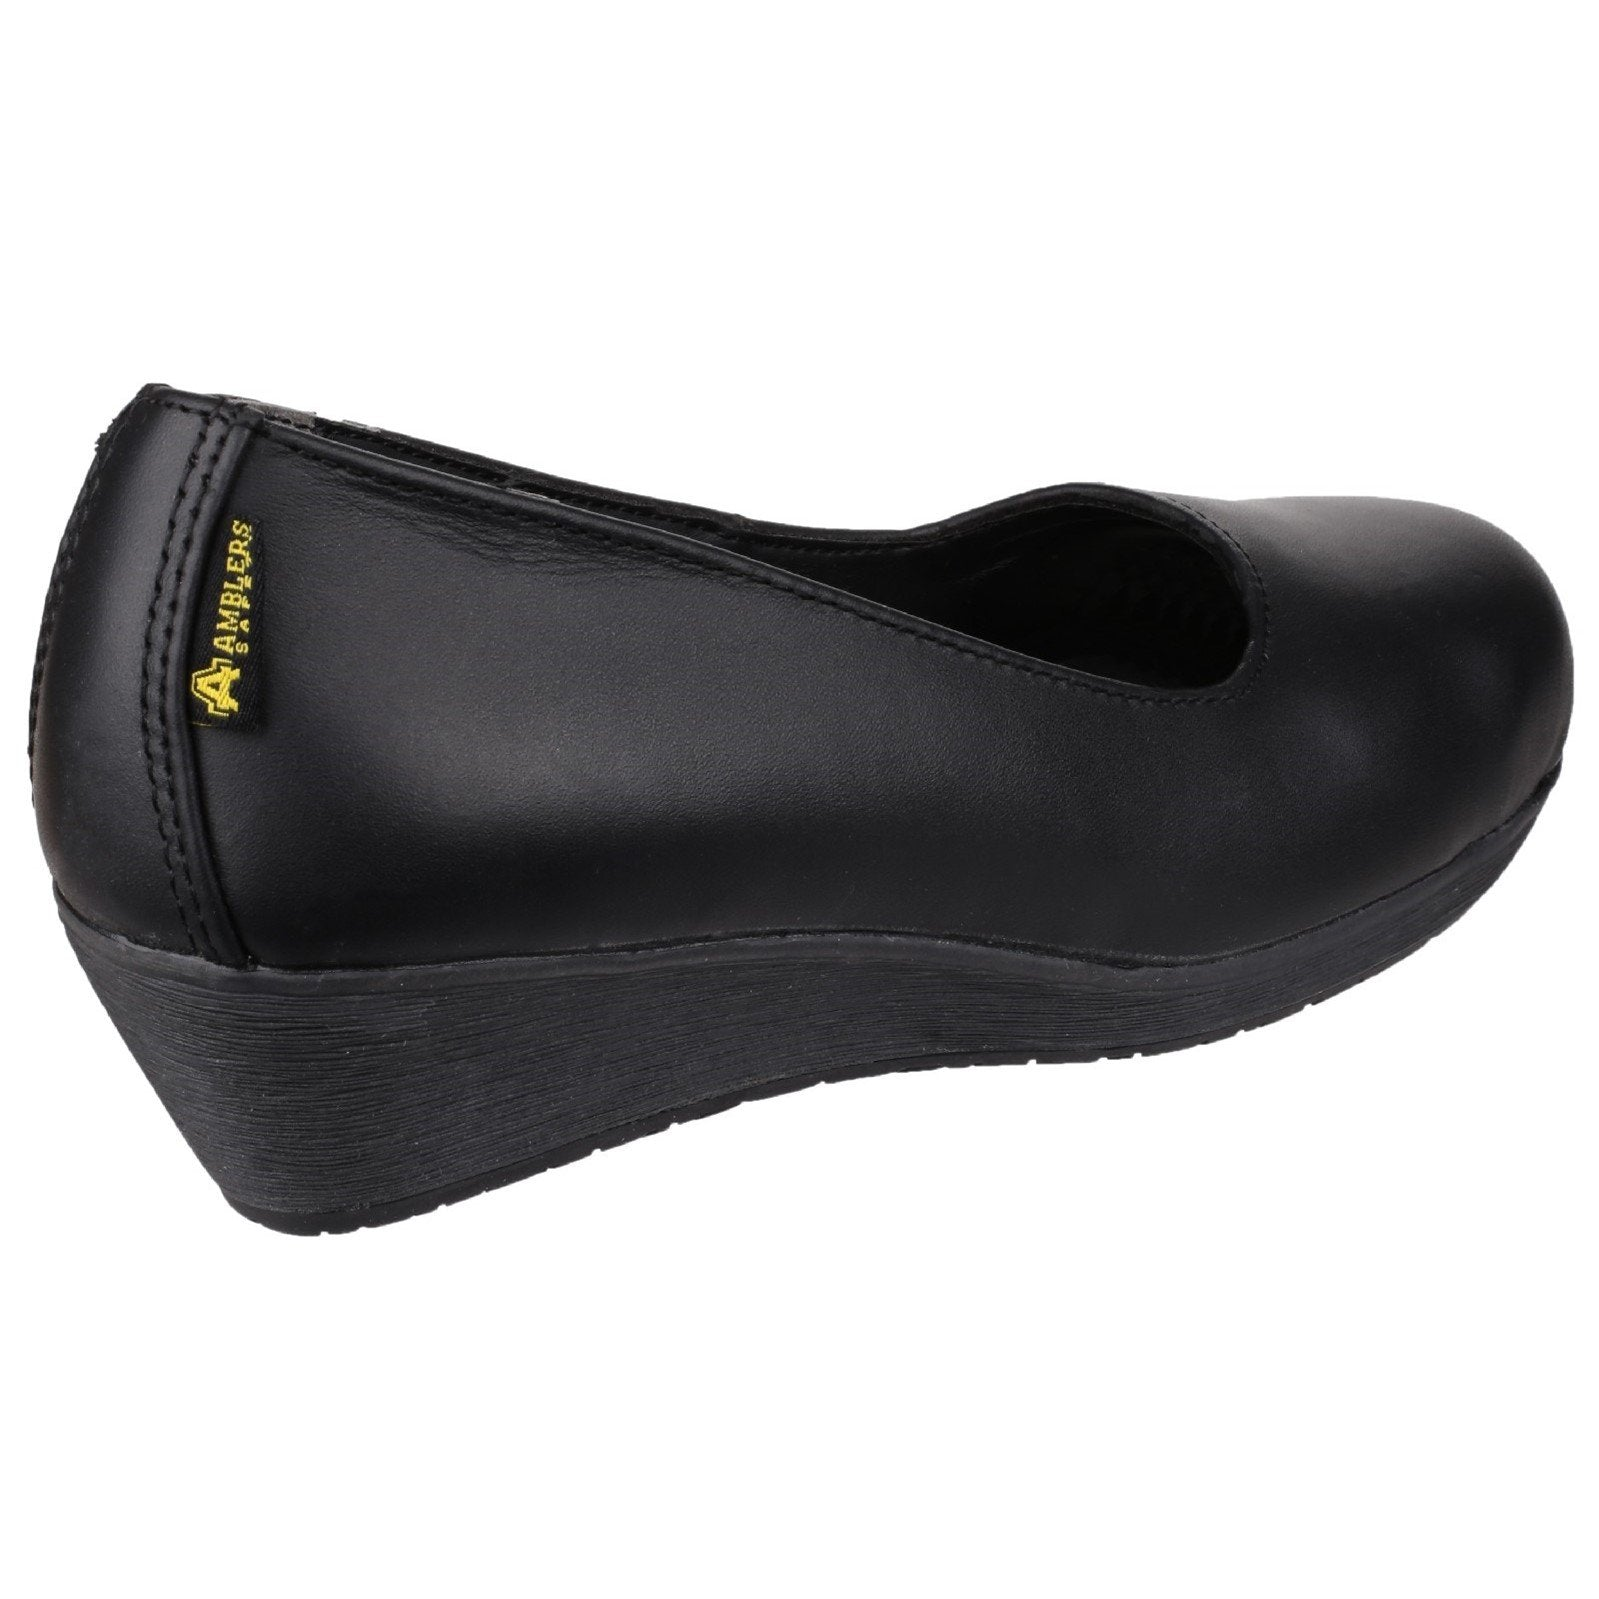 Amblers Ladies Safety Court Shoes